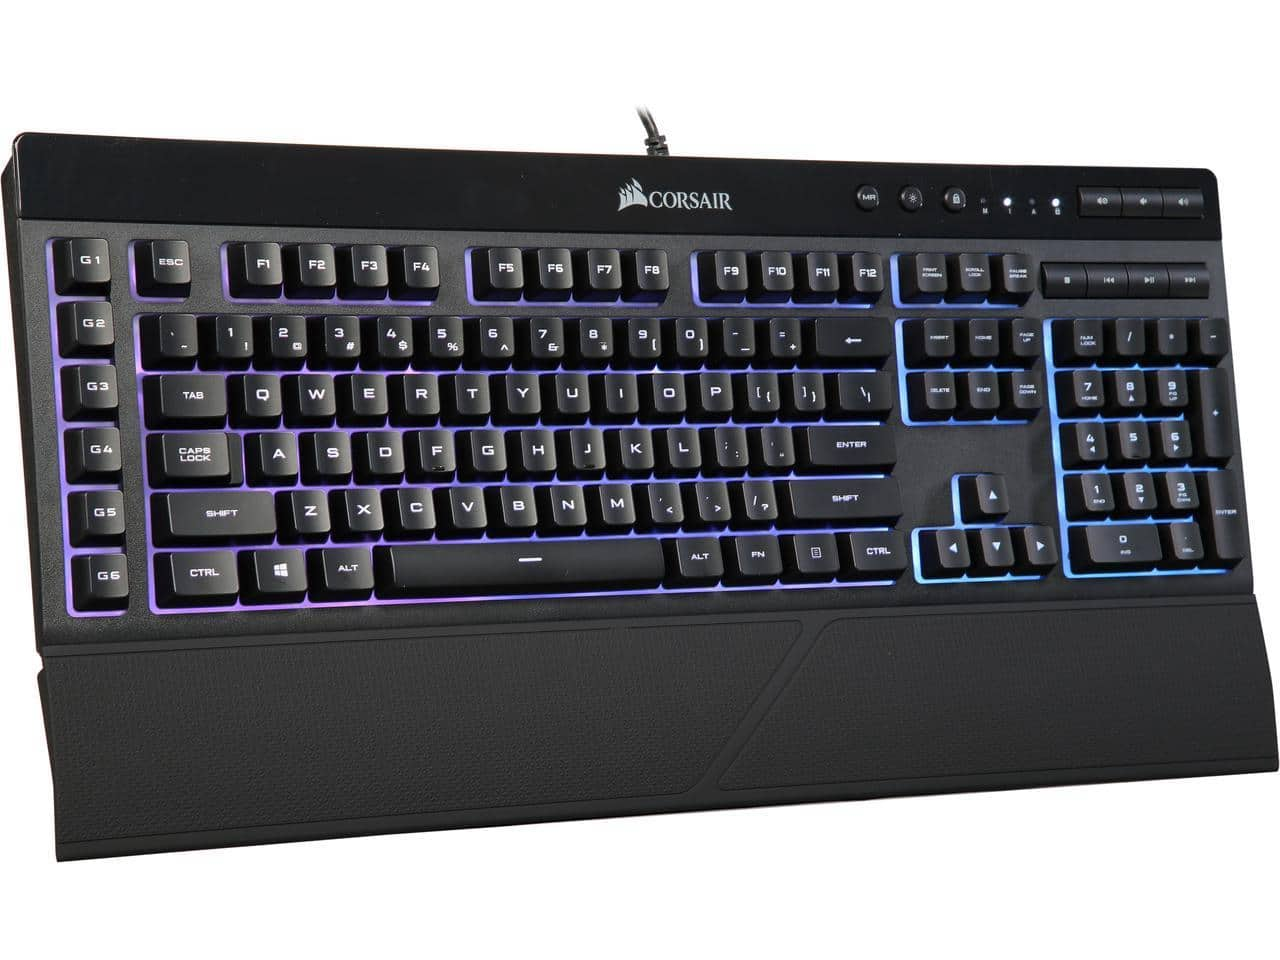 Refurbished Sale: Corsair K55 RGB Gaming Keyboard for $28.99 + S&H or Logitech K480 Bluetooth Multi-Device Keyboard for $16.99 + Free Ship @ Newegg